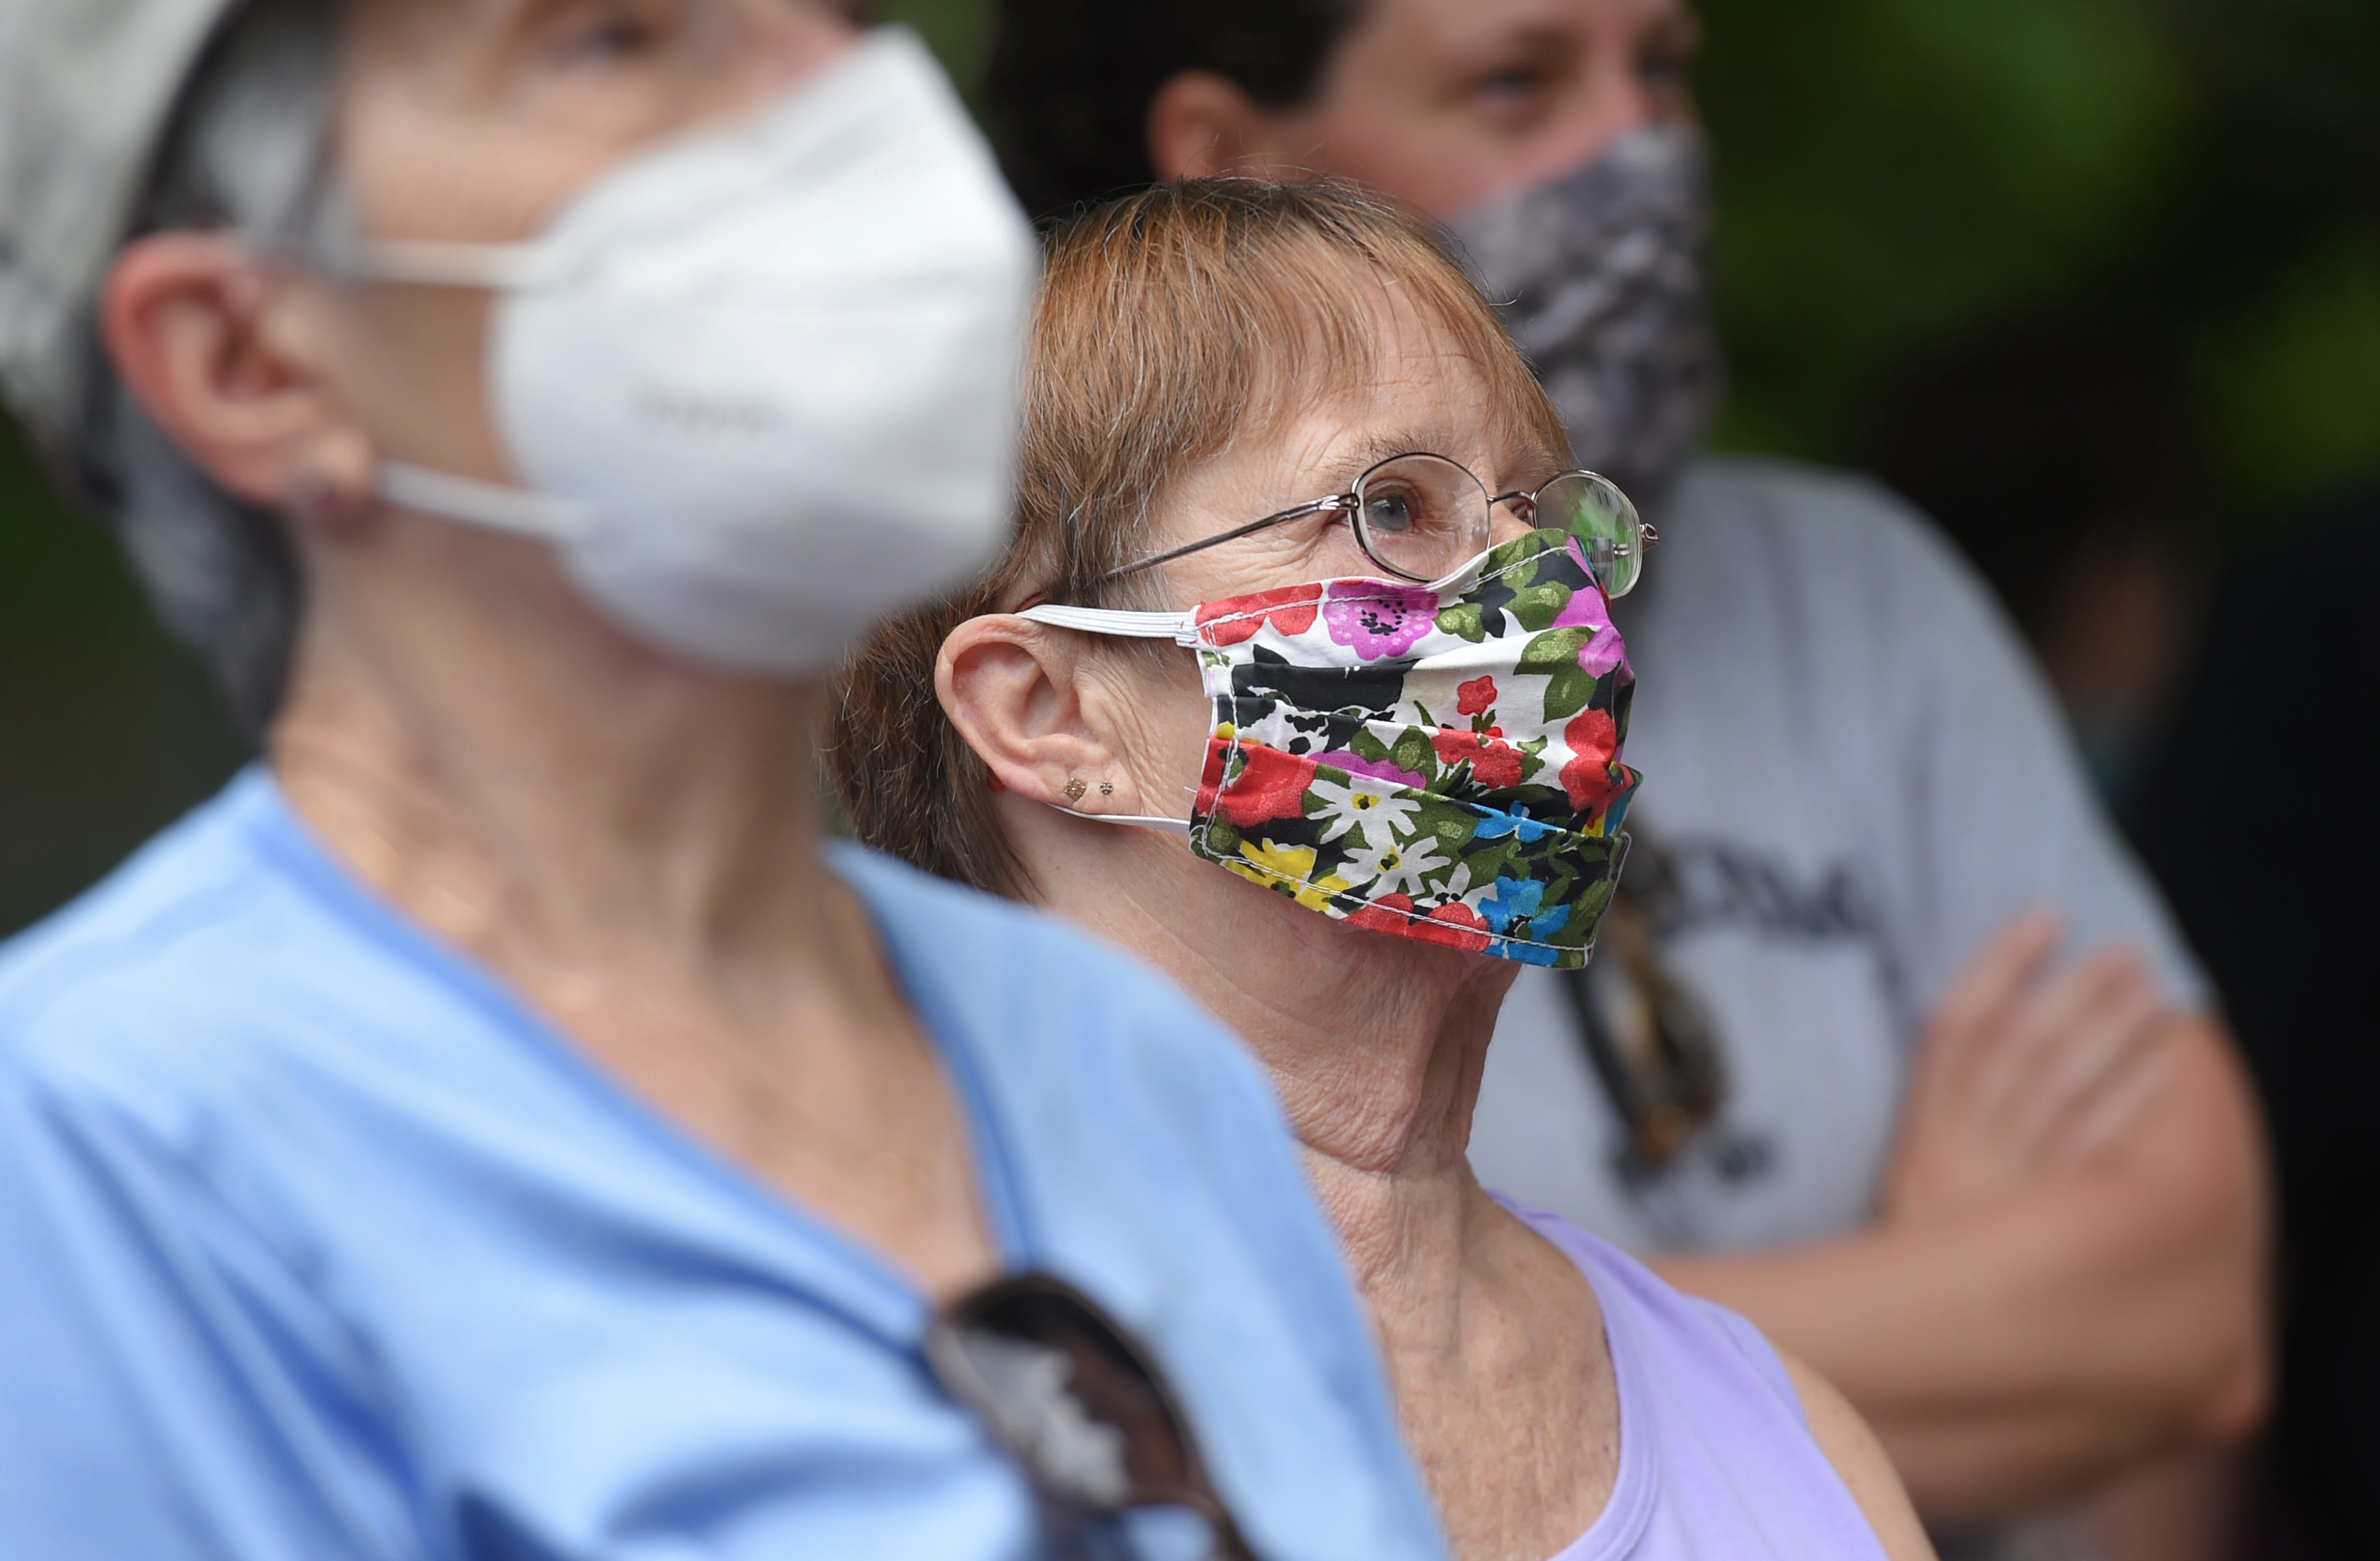 Jean Lindsey, center, the mother of Cheri Lindsey, who was murdered in 1984, watches as the Sturges St., Binghamton, house where she was murdered is demolished on Thursday, July 30, 2020.